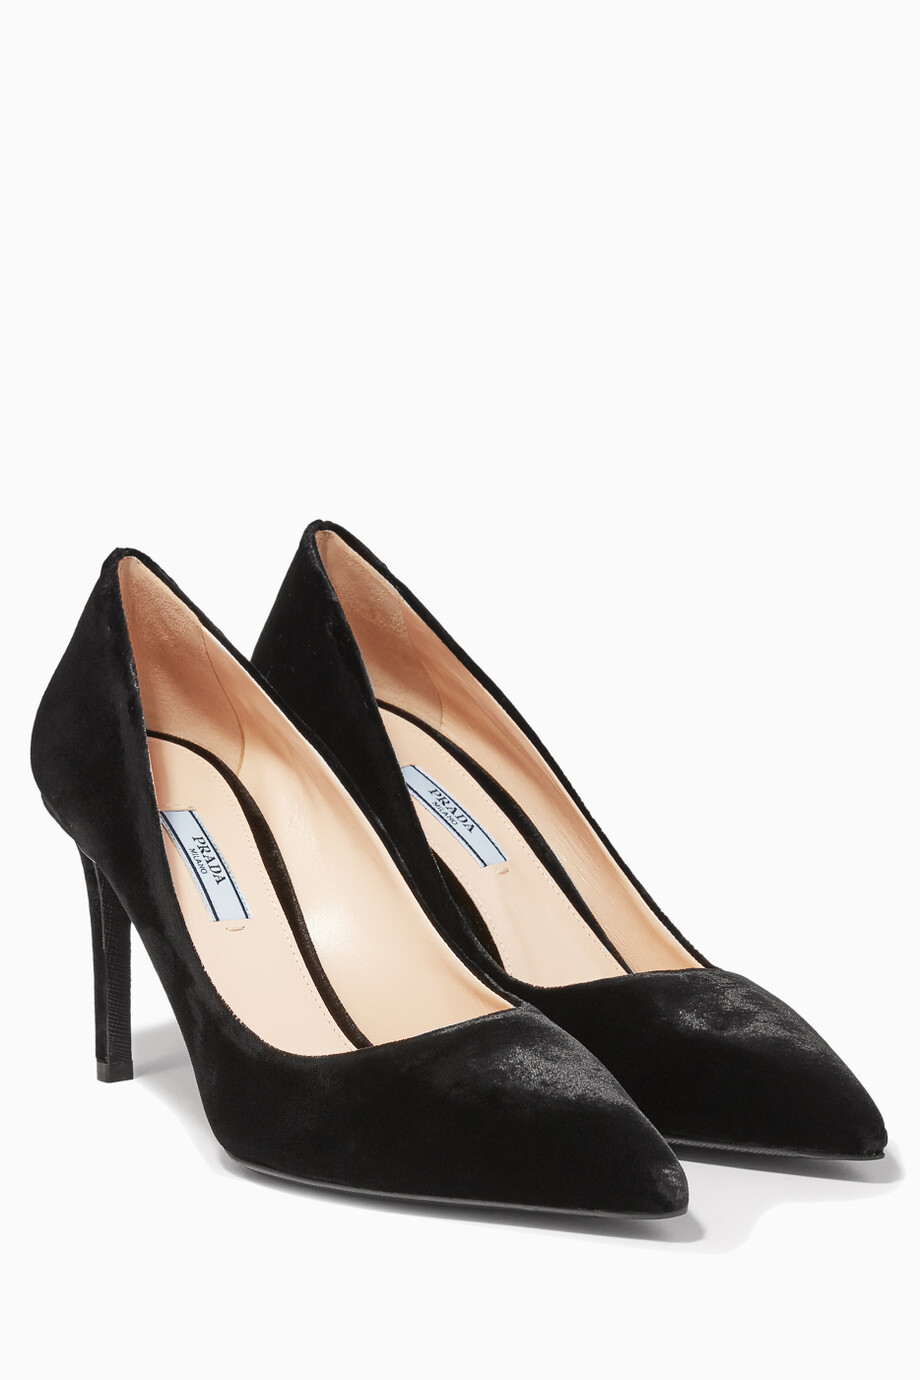 8d792cf74c8 Shop Prada Black Black Velvet Pumps for Women | Ounass Kuwait